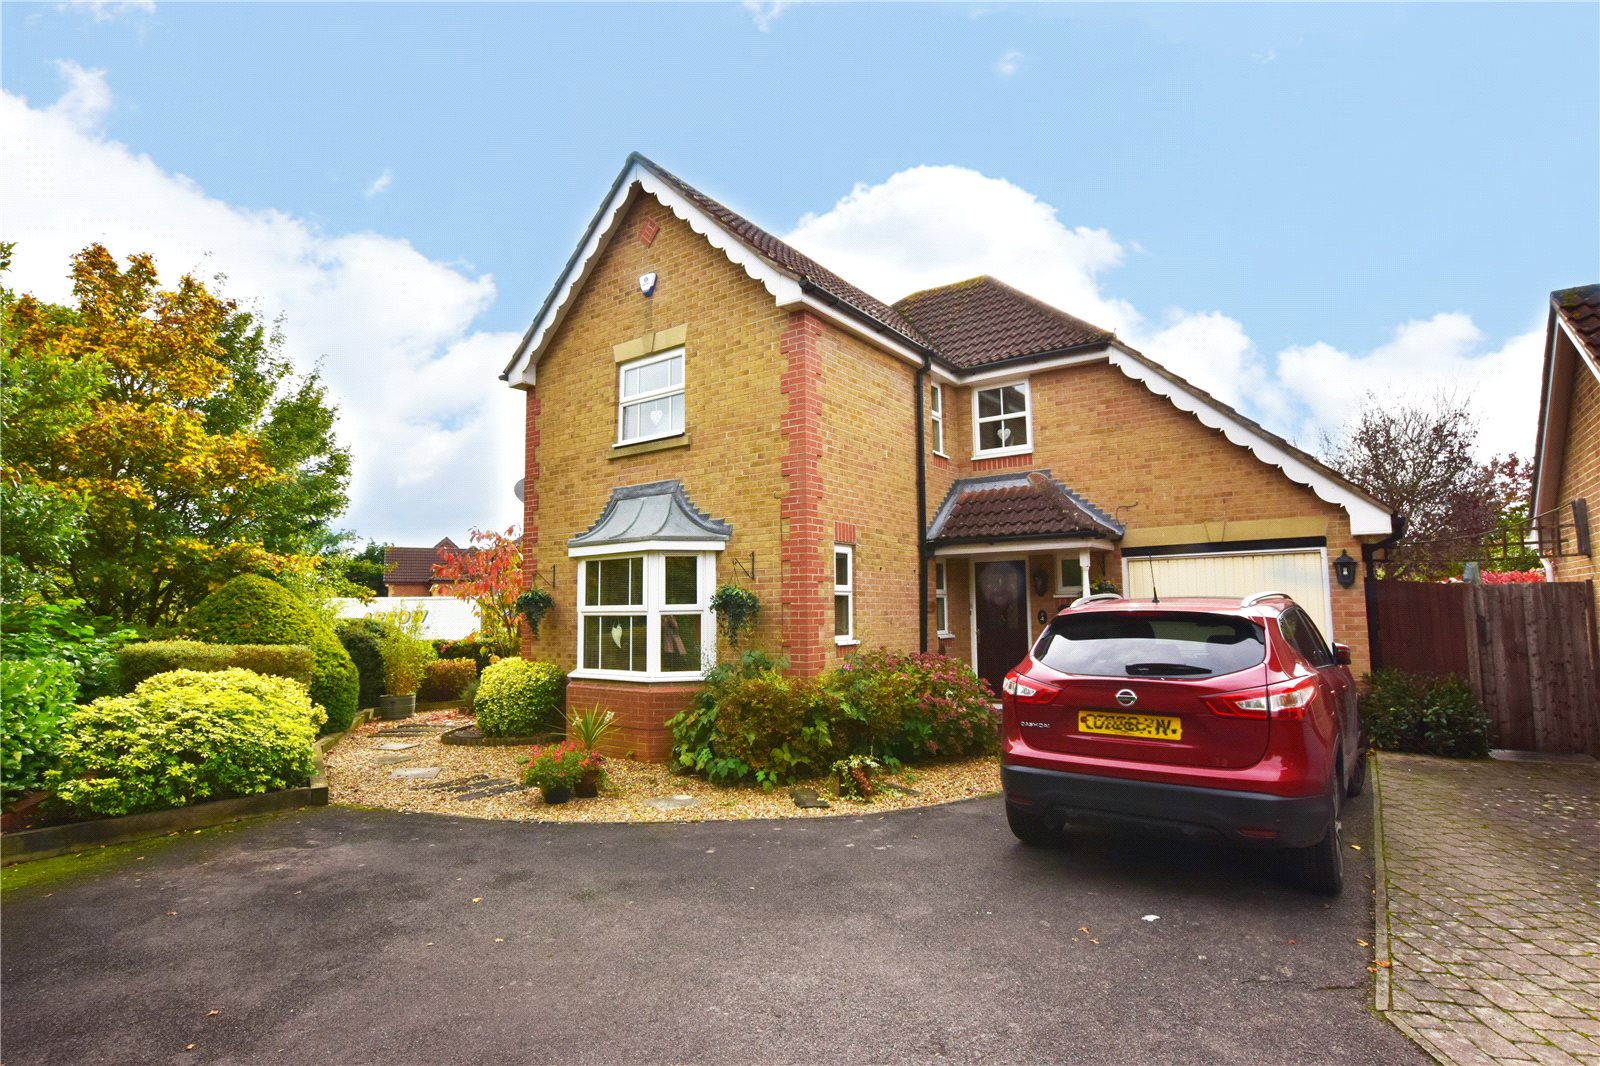 4 Bedrooms Detached House for sale in Master Close, Woodley, Reading, Berkshire, RG5